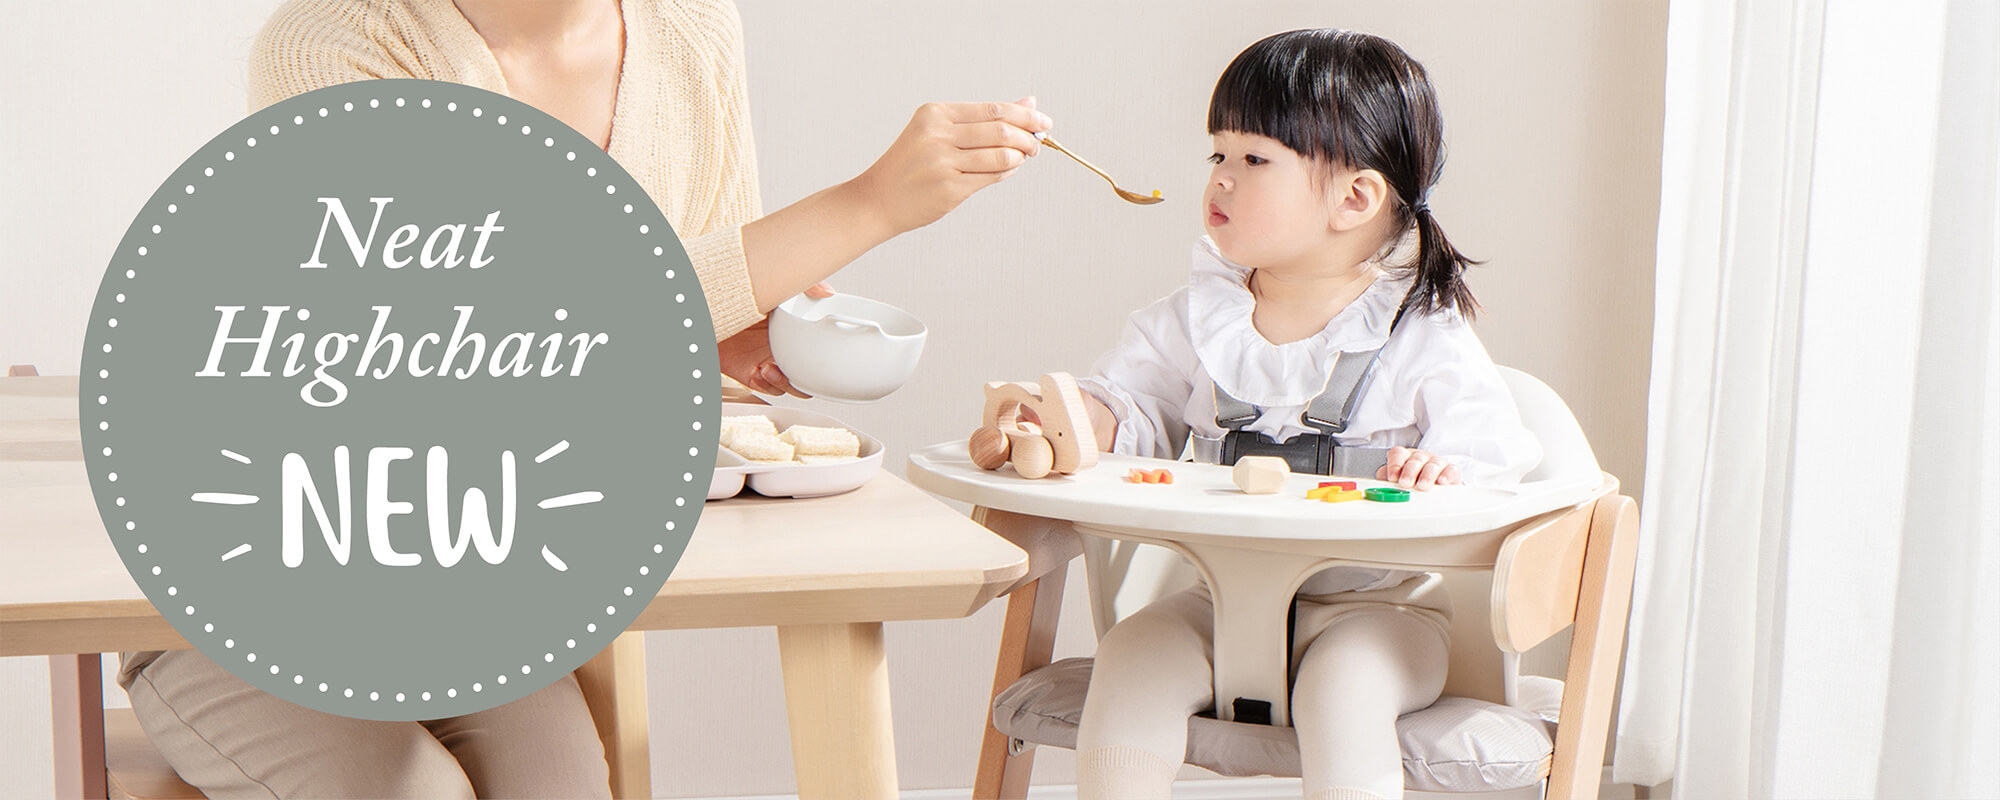 Boori_-_Catalogue_Page_-_Mobile_Promo_CMS_Blocks_Neat_Highchair_September_2021